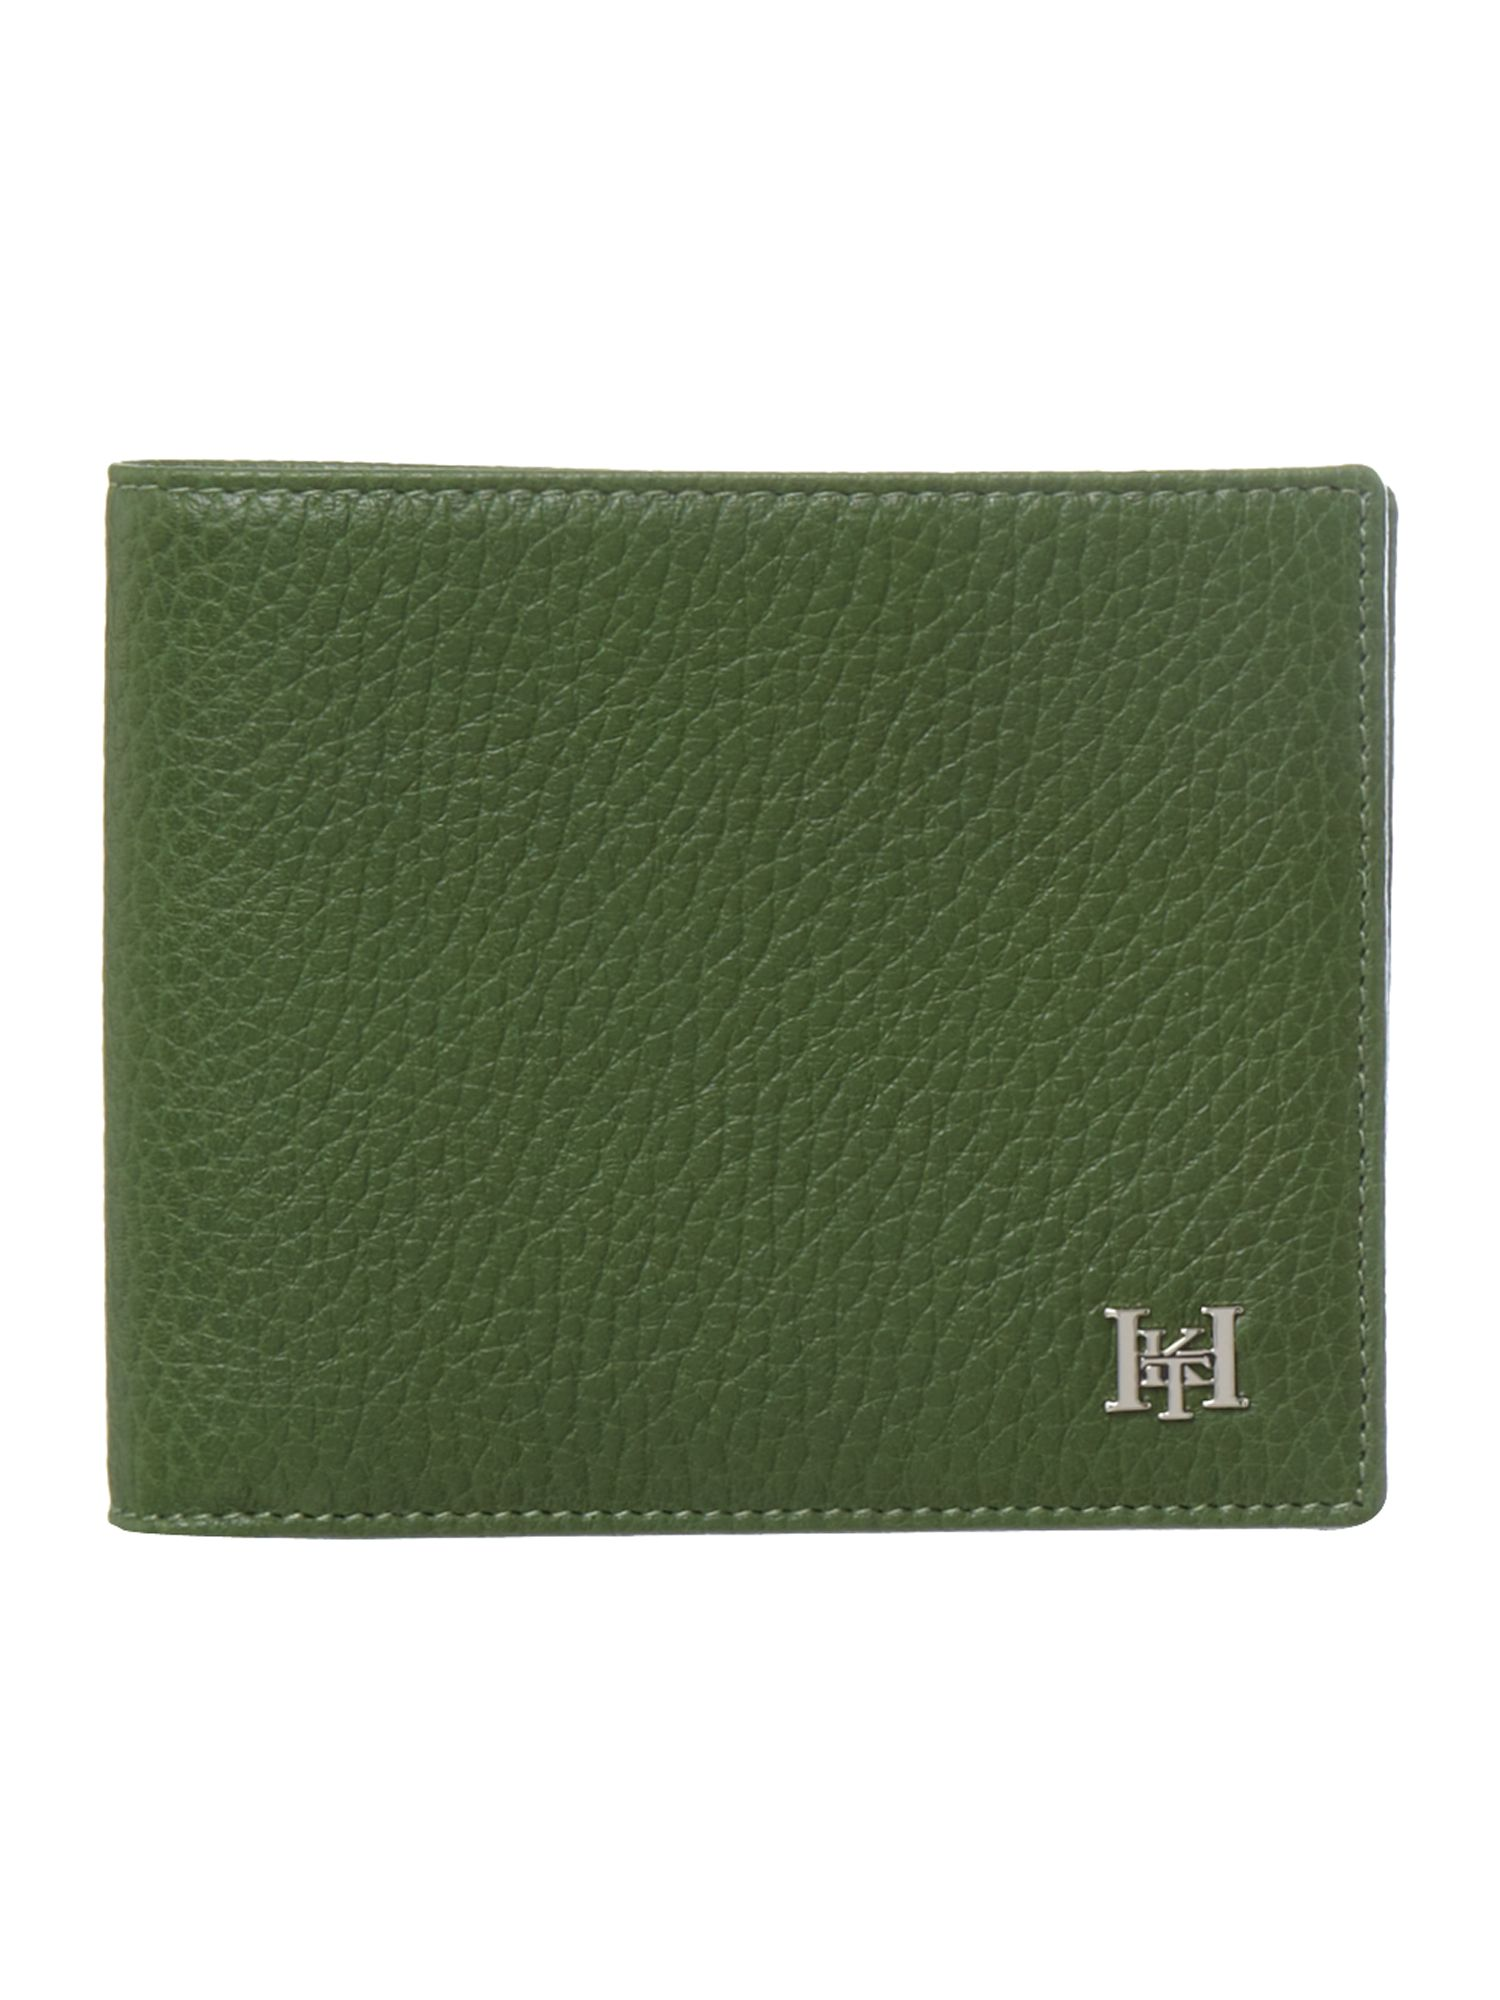 Hackett double billfold wallet